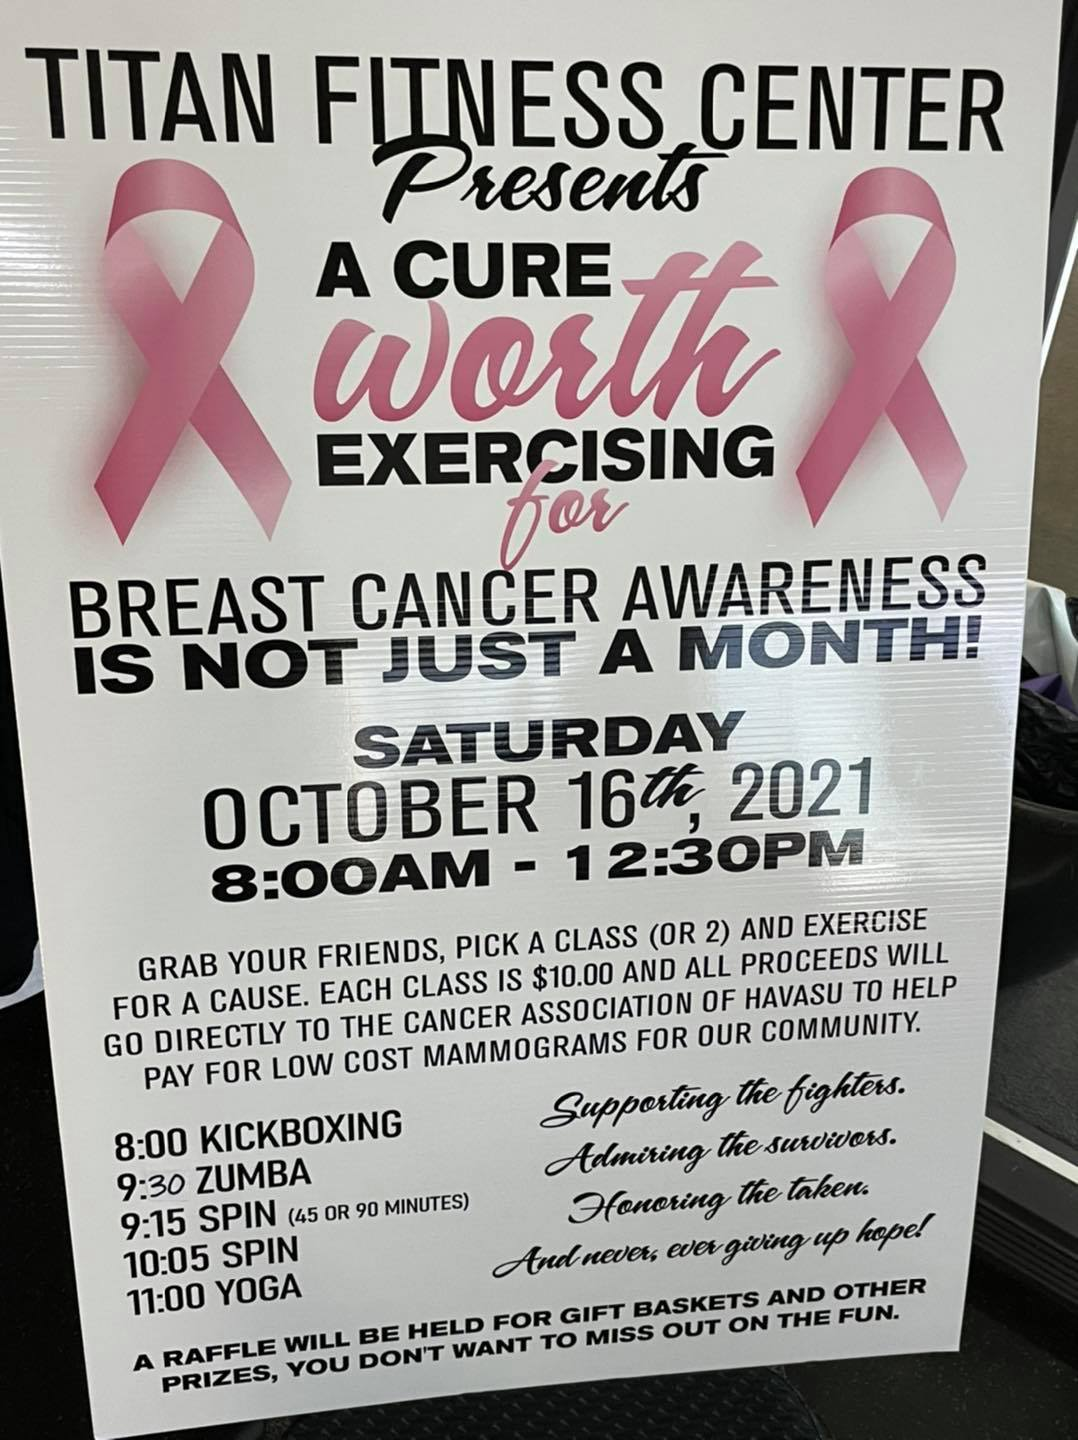 A Cure Worth Excersizing For